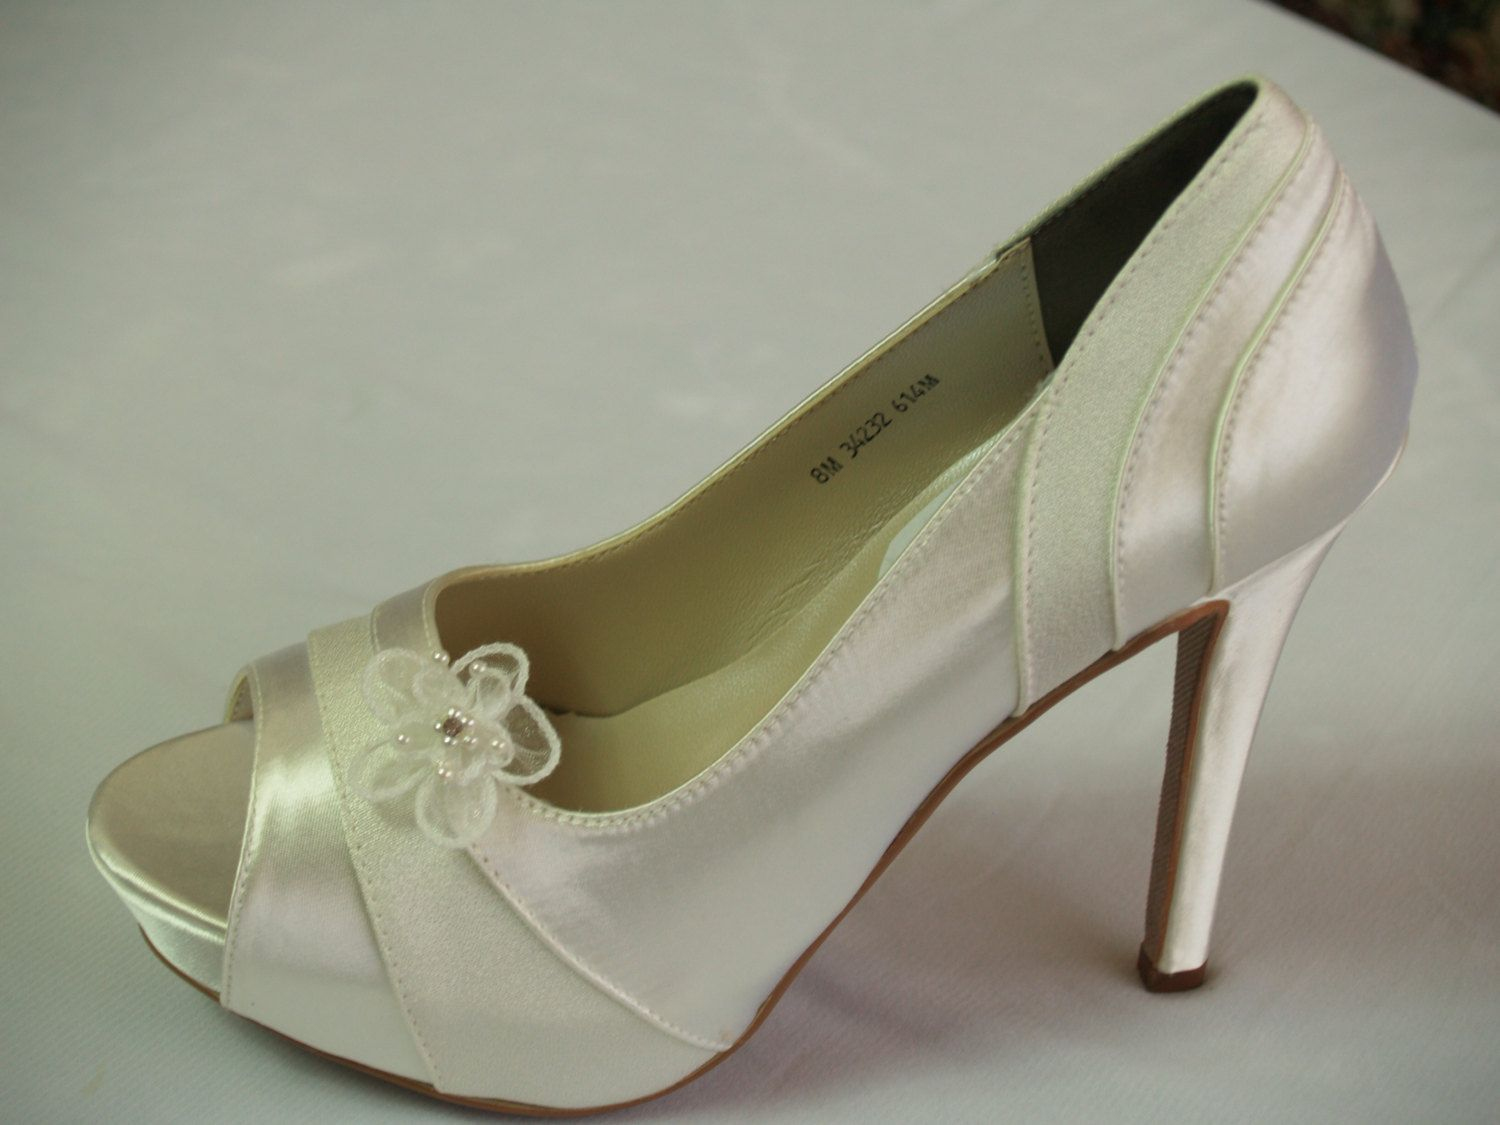 d6285b1b98e57 Ivory Wedding Shoes Heels 4inches Satin and Crepe by NewBrideCo ...